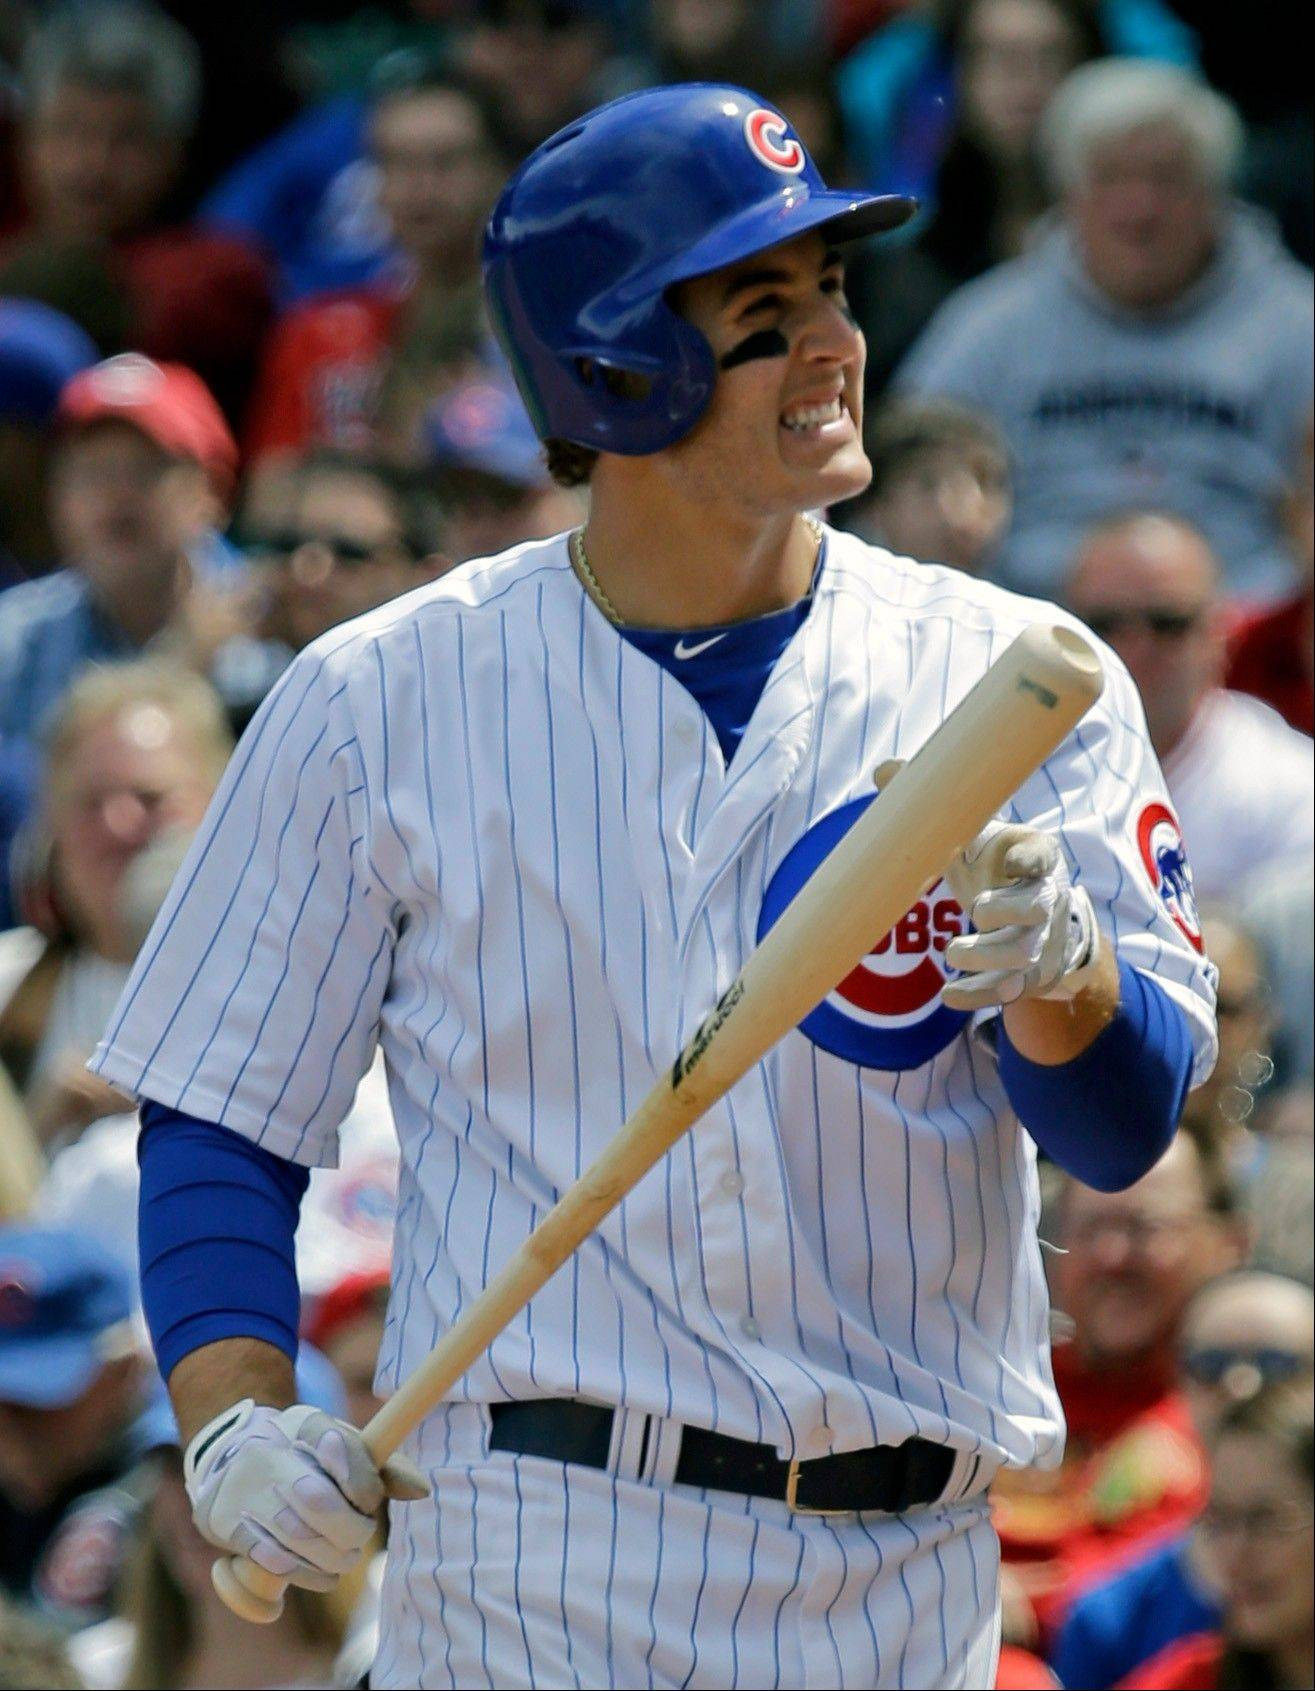 Cubs first baseman Anthony Rizzo reacts after striking out in the first inning of Sunday�s 7-4 loss to the Reds at Wrigley Field.